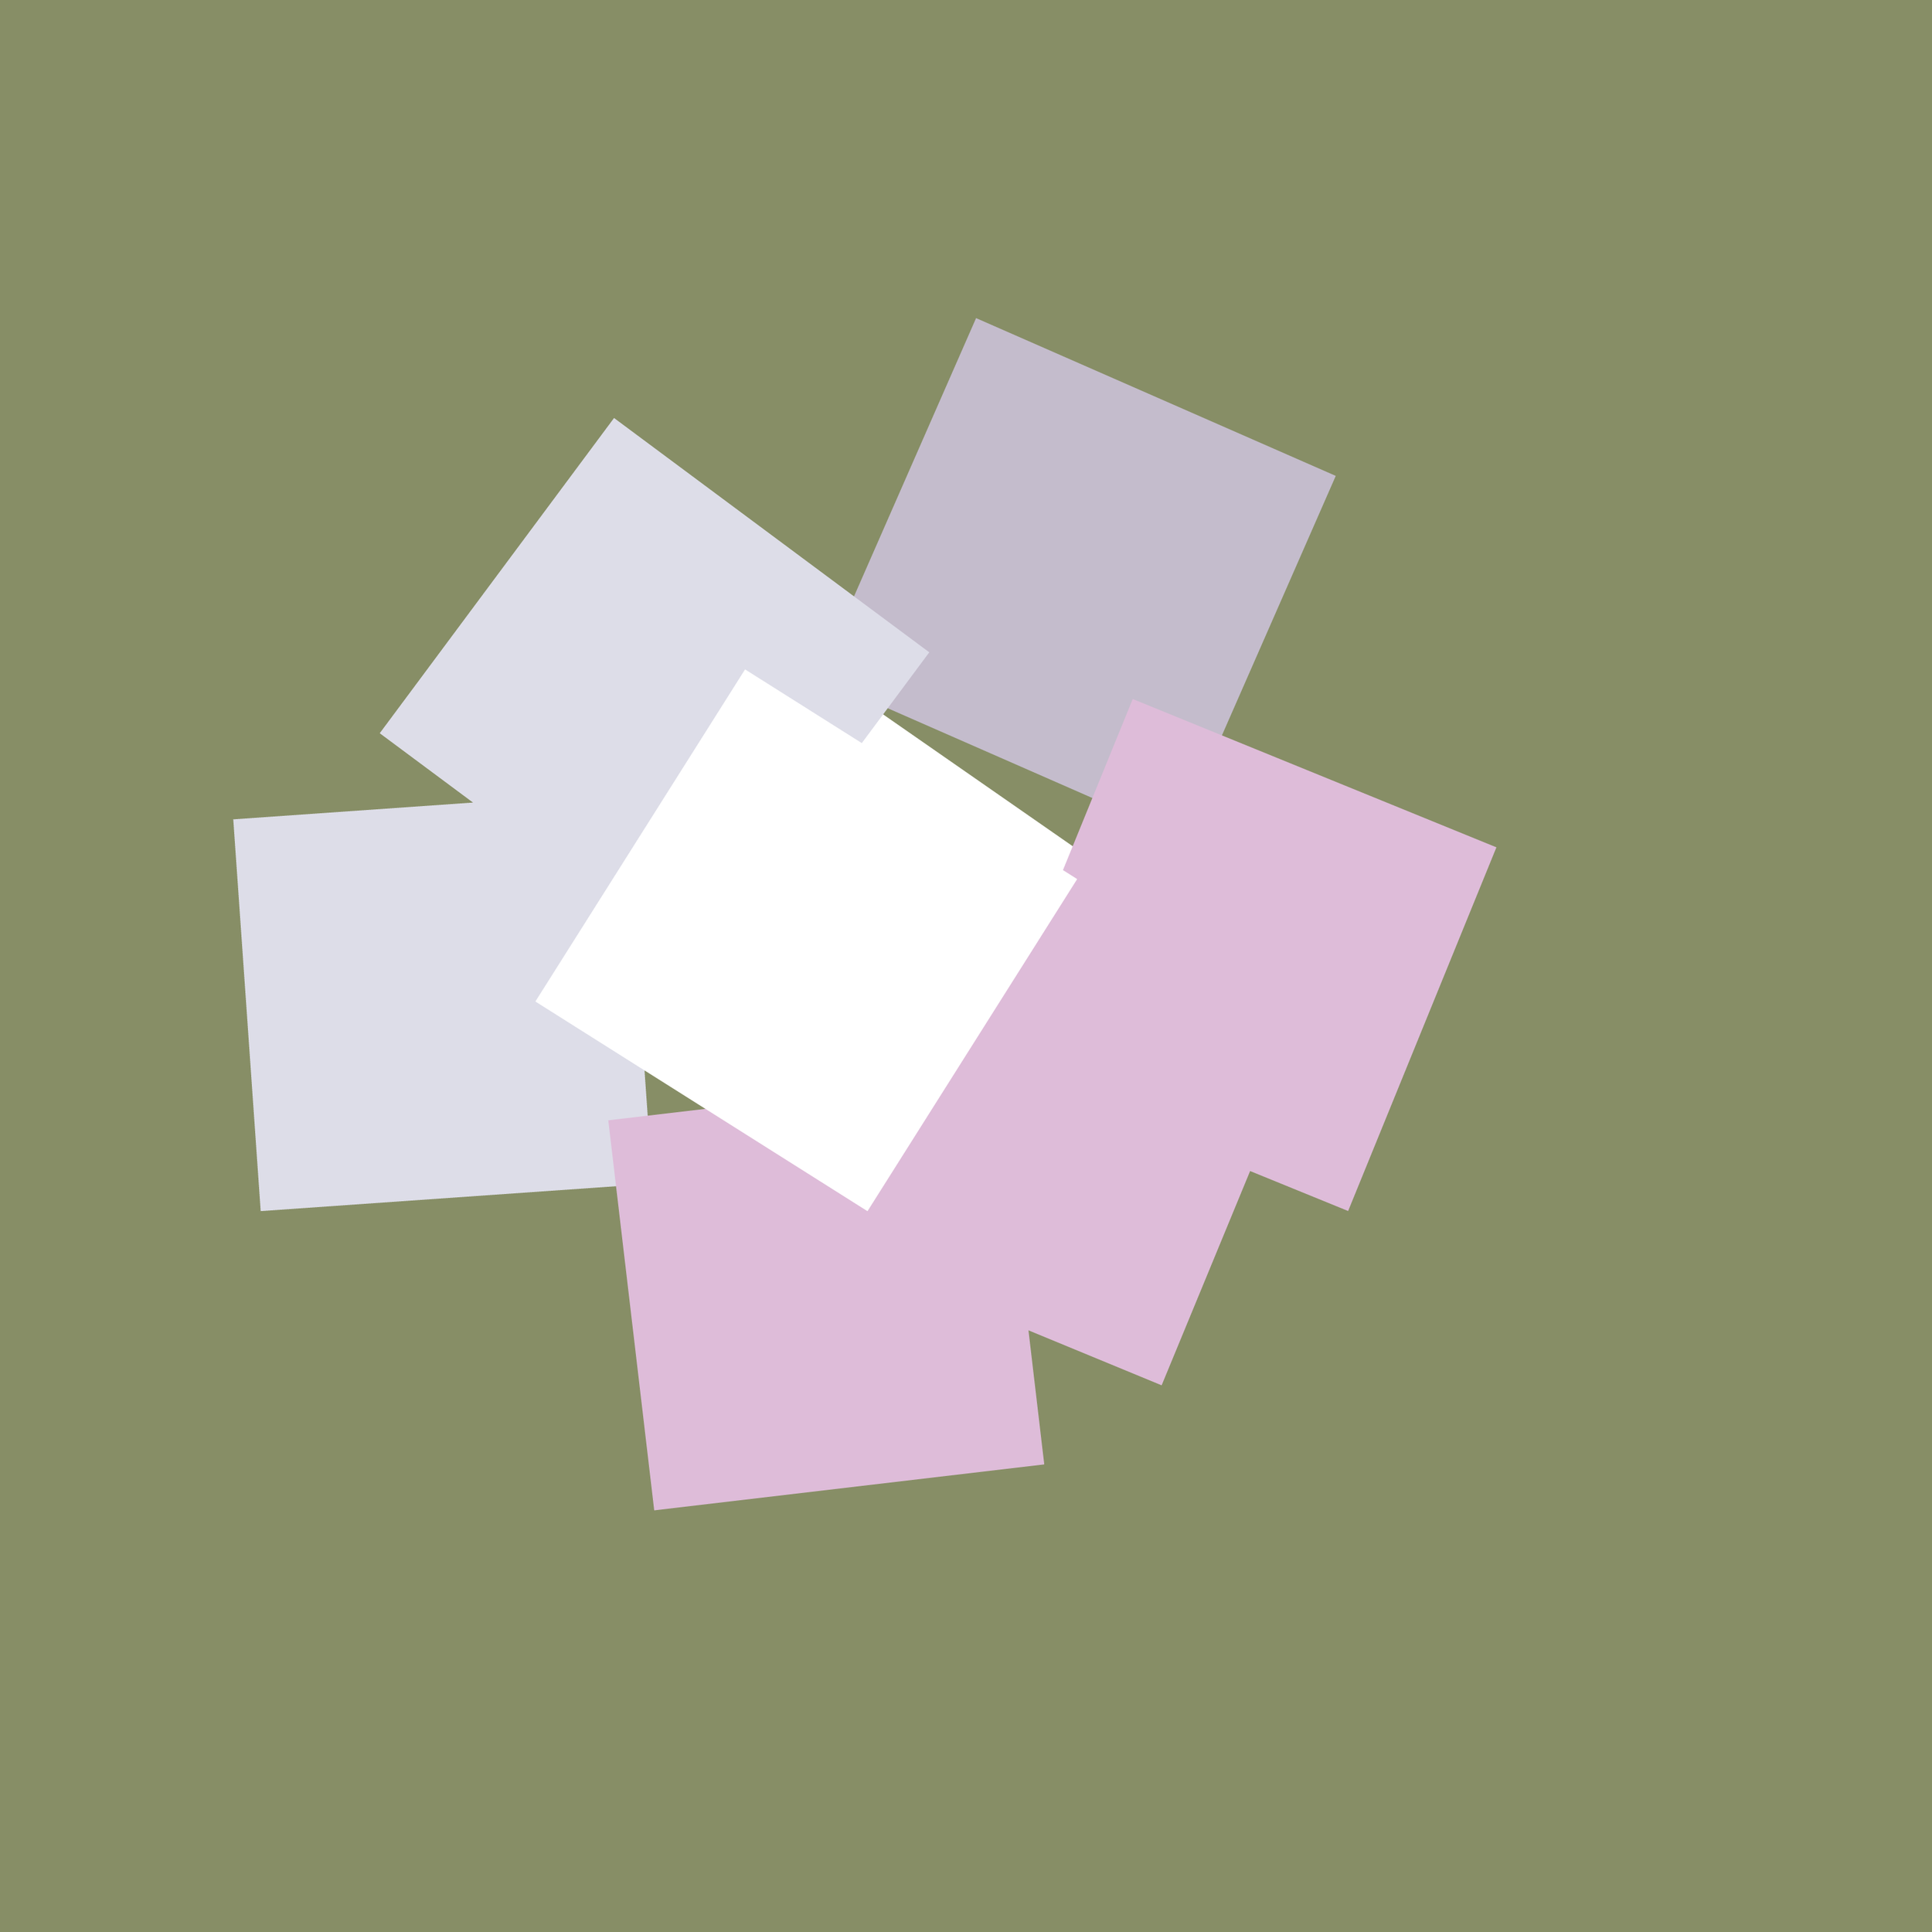 Flower_4-01.png